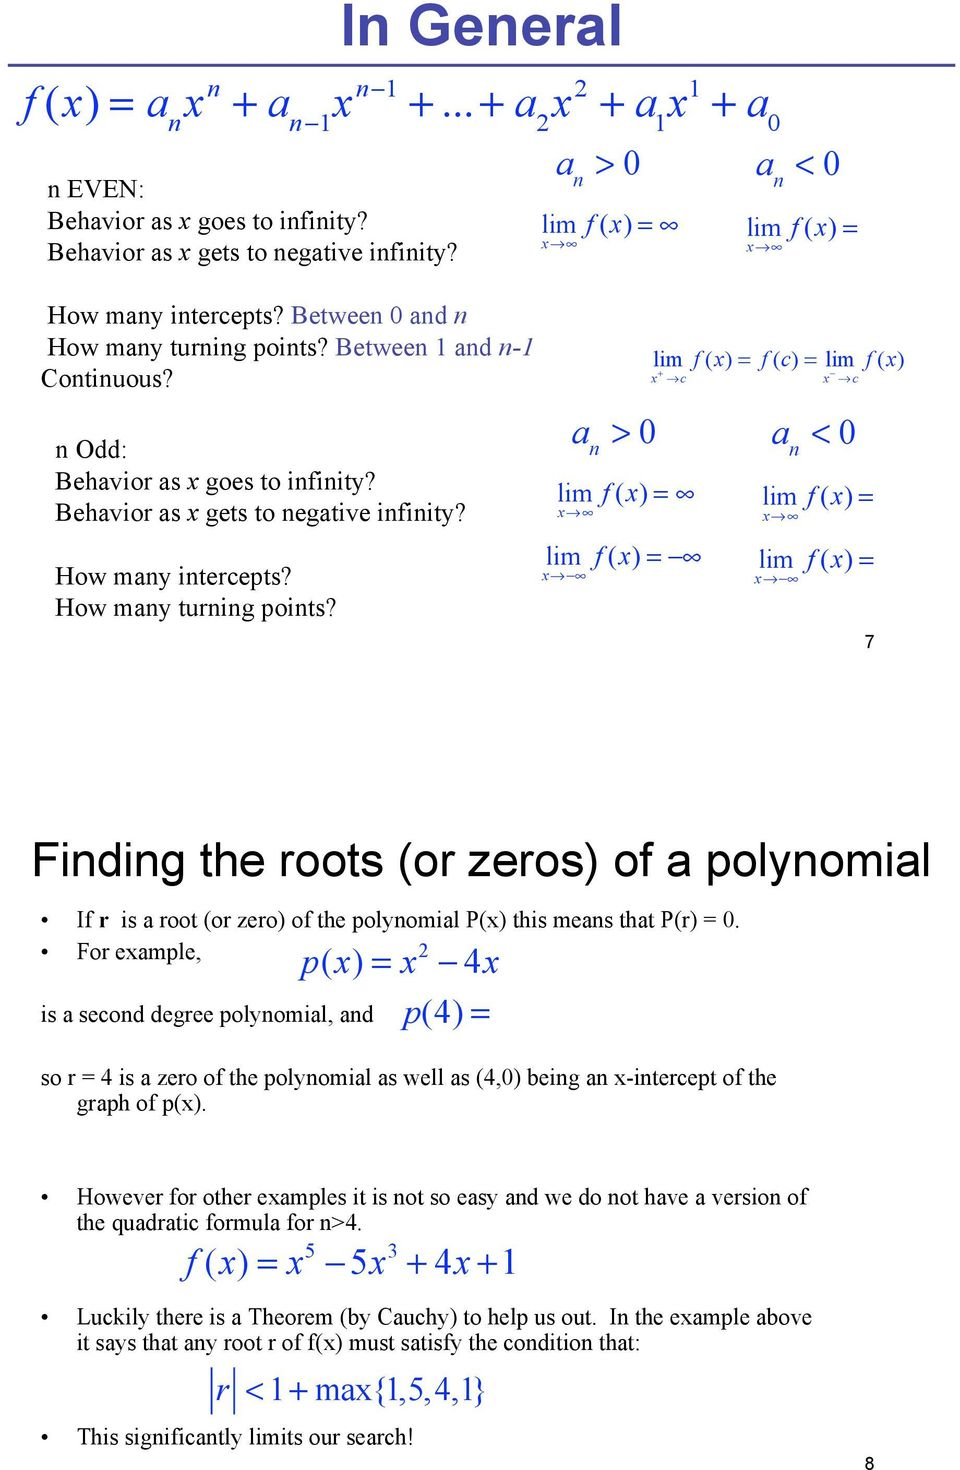 "c x ""!c a n > 0 a n < 0 # 7 Finding the roots (or zeros) of a polynomial If r is a root (or zero) of the polynomial P(x) this means that P(r) = 0."